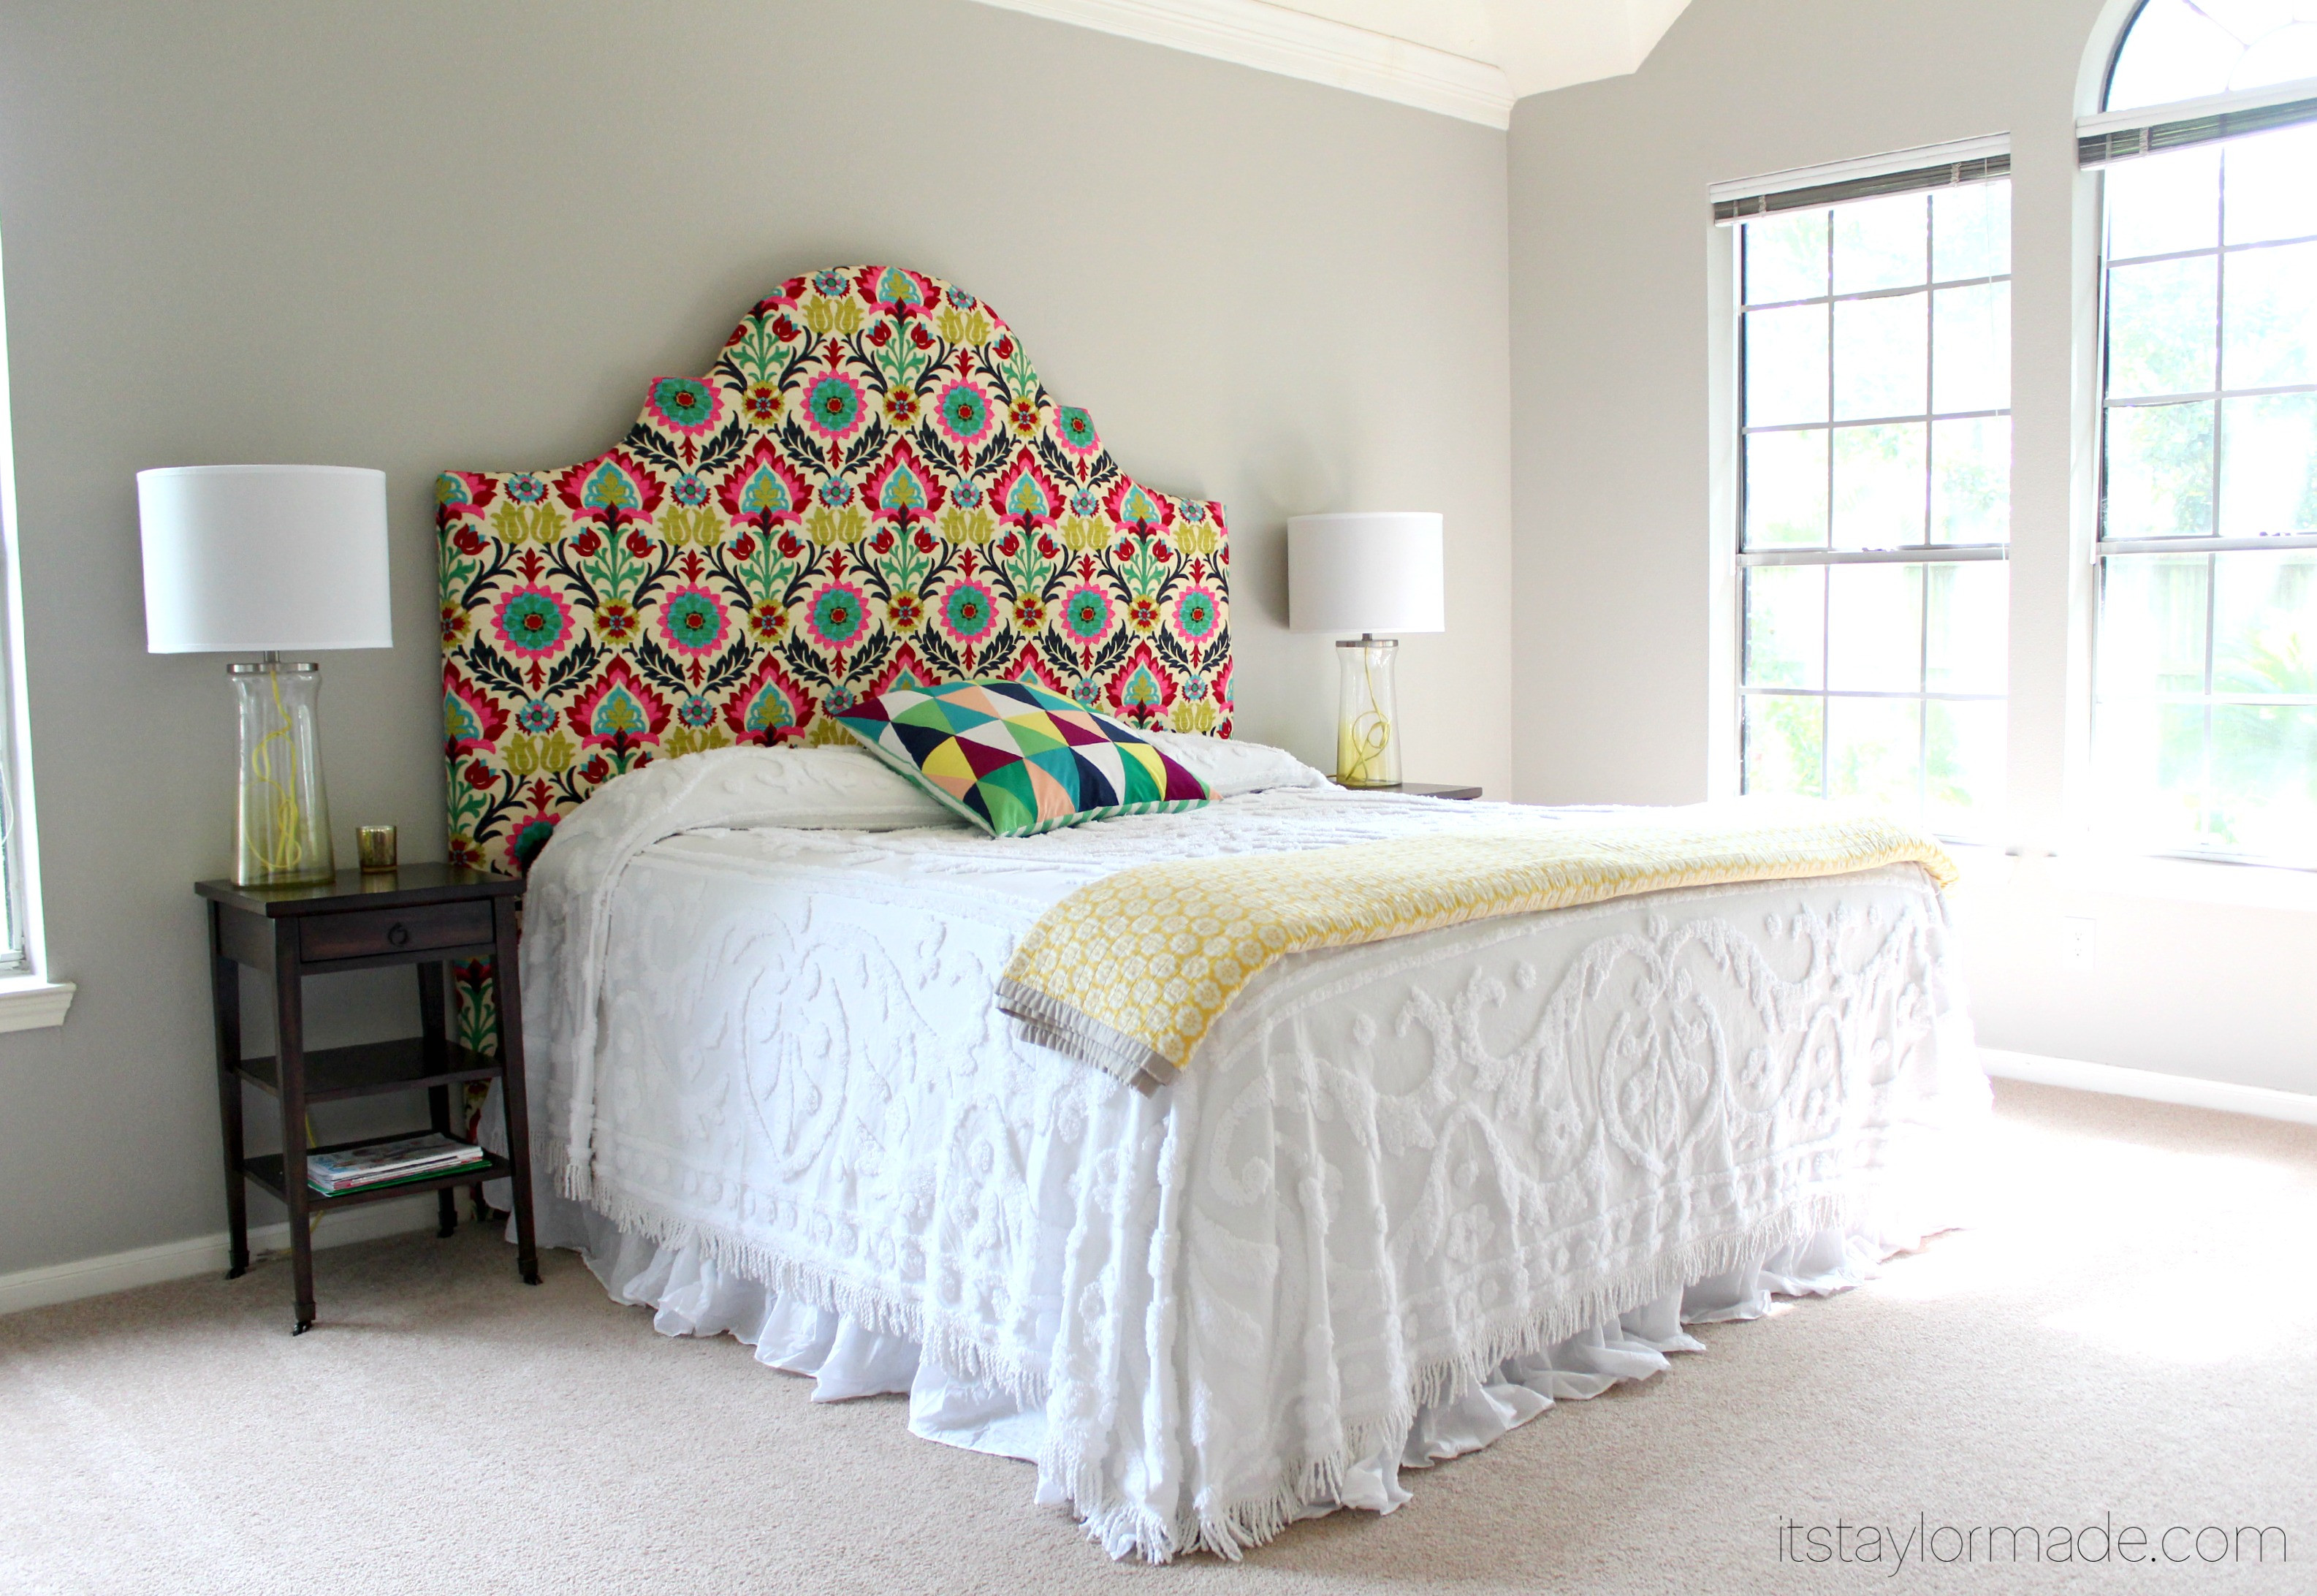 Best ideas about DIY Bed Headboards . Save or Pin DIY Headboard TaylorMade Now.